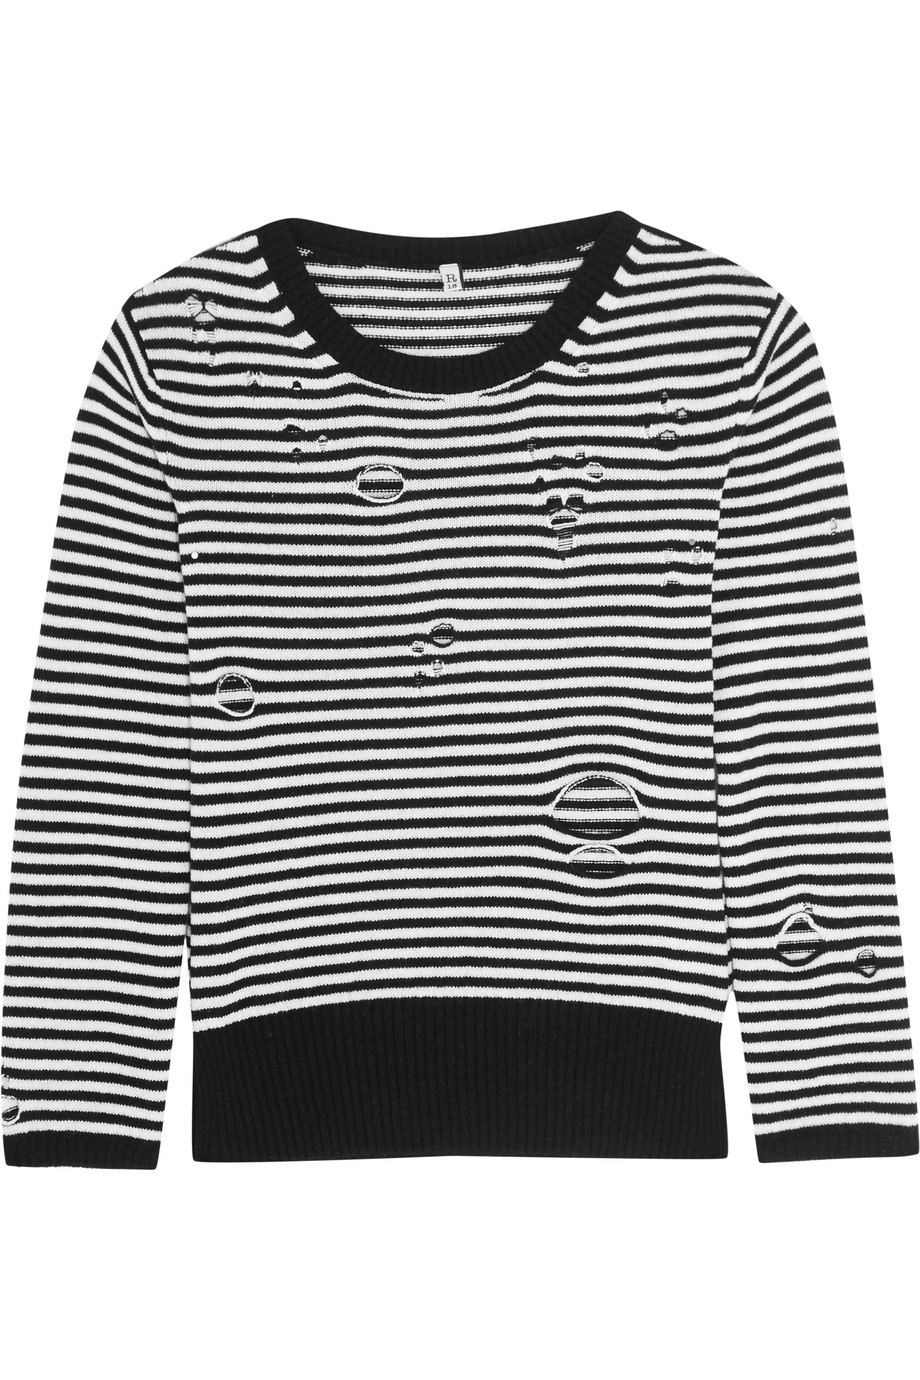 R13 Distressed Striped Cashmere Sweater, Black, Women's